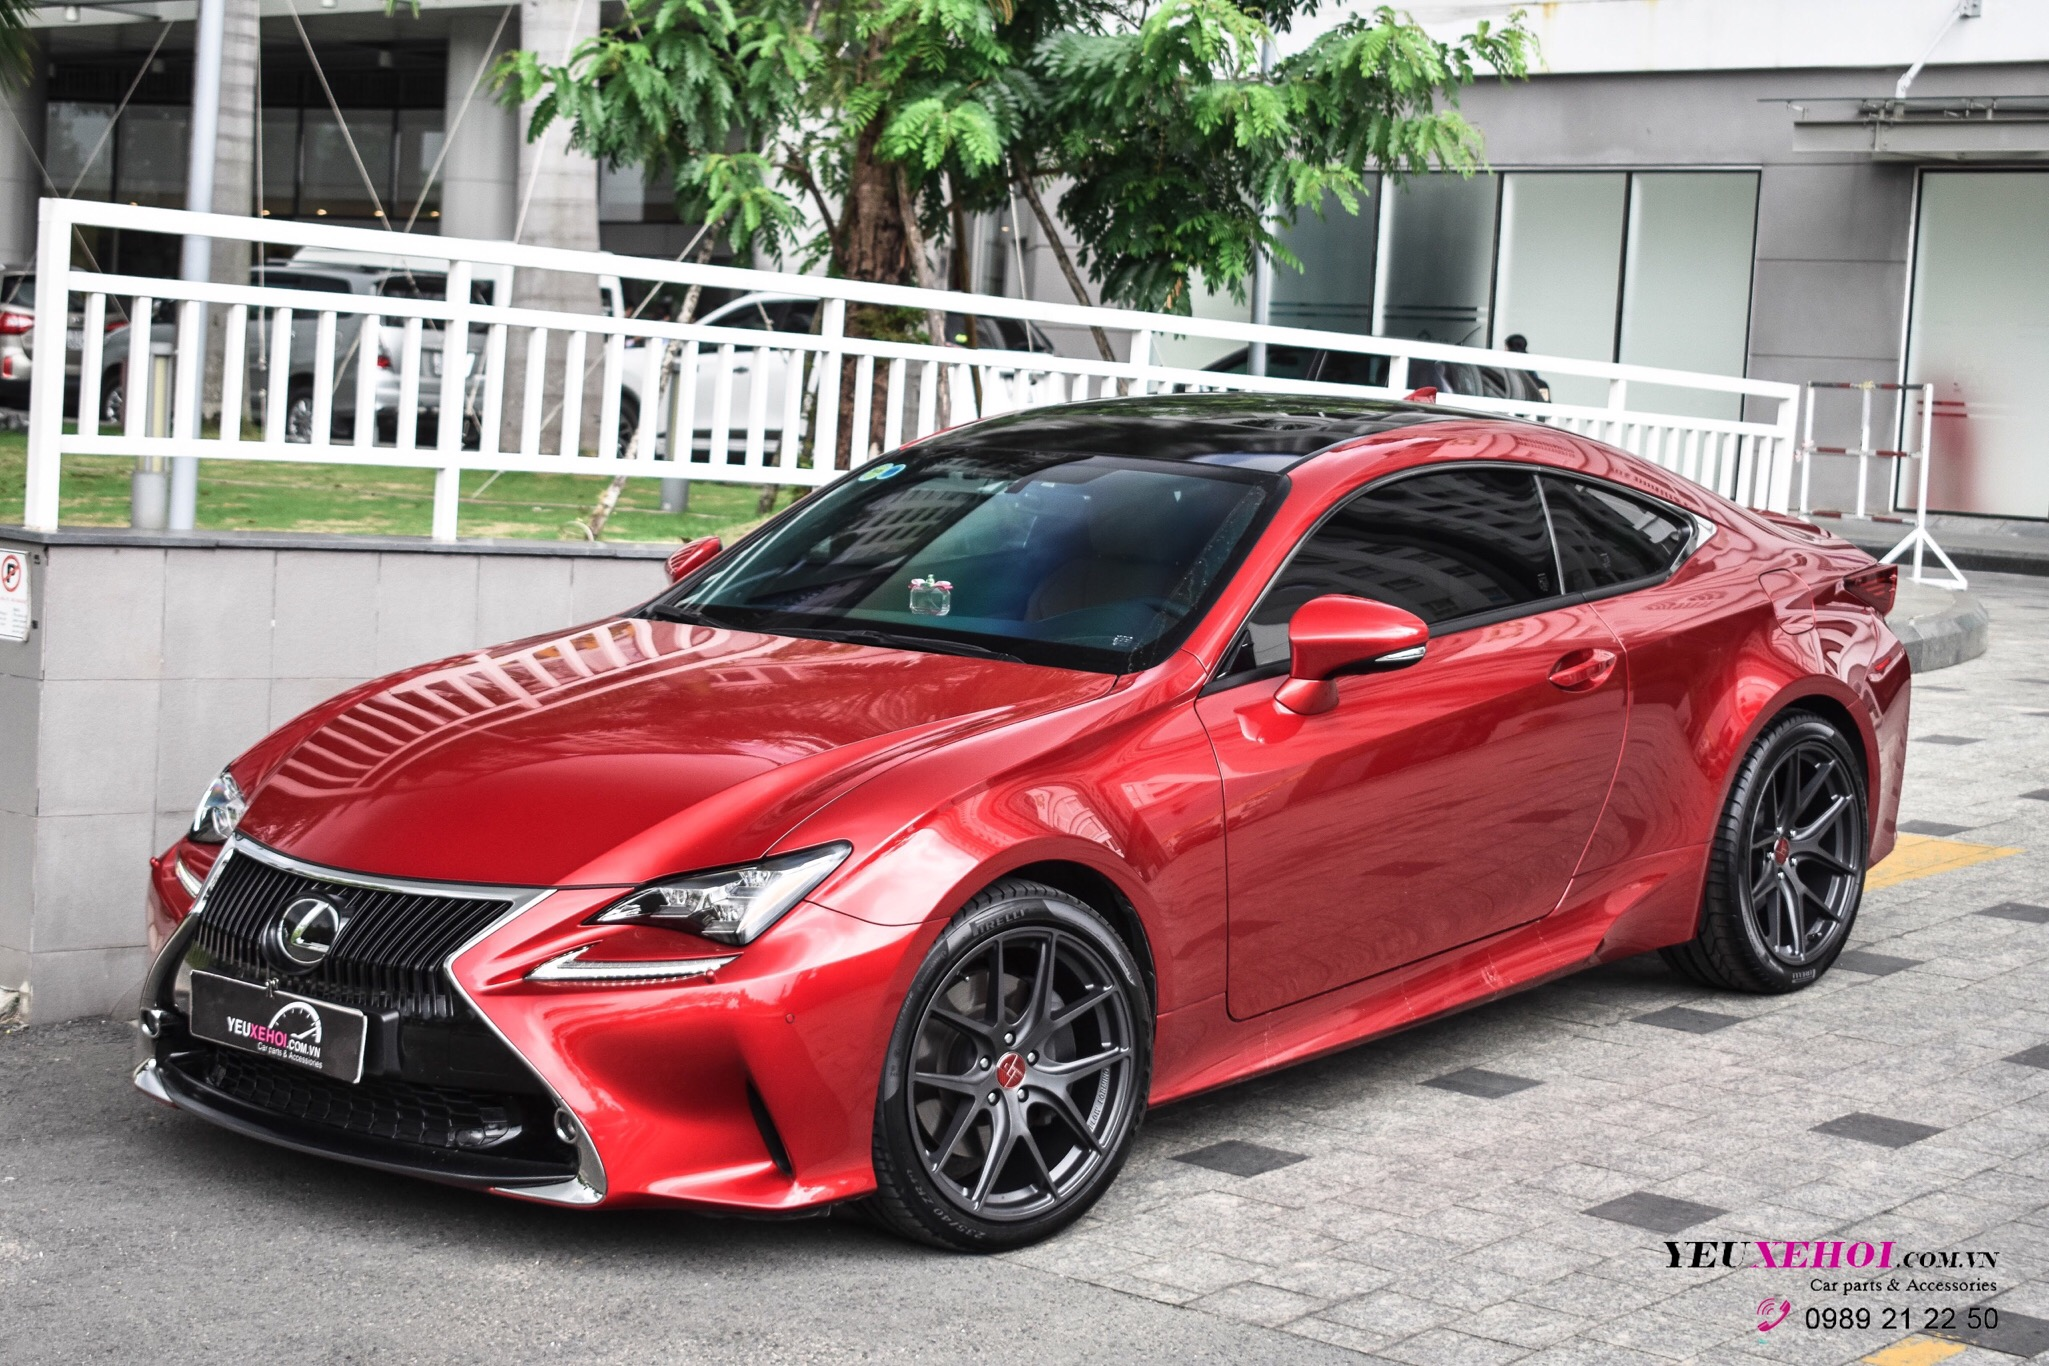 305FORGED WHEEL LEXUS RC200 COUPE